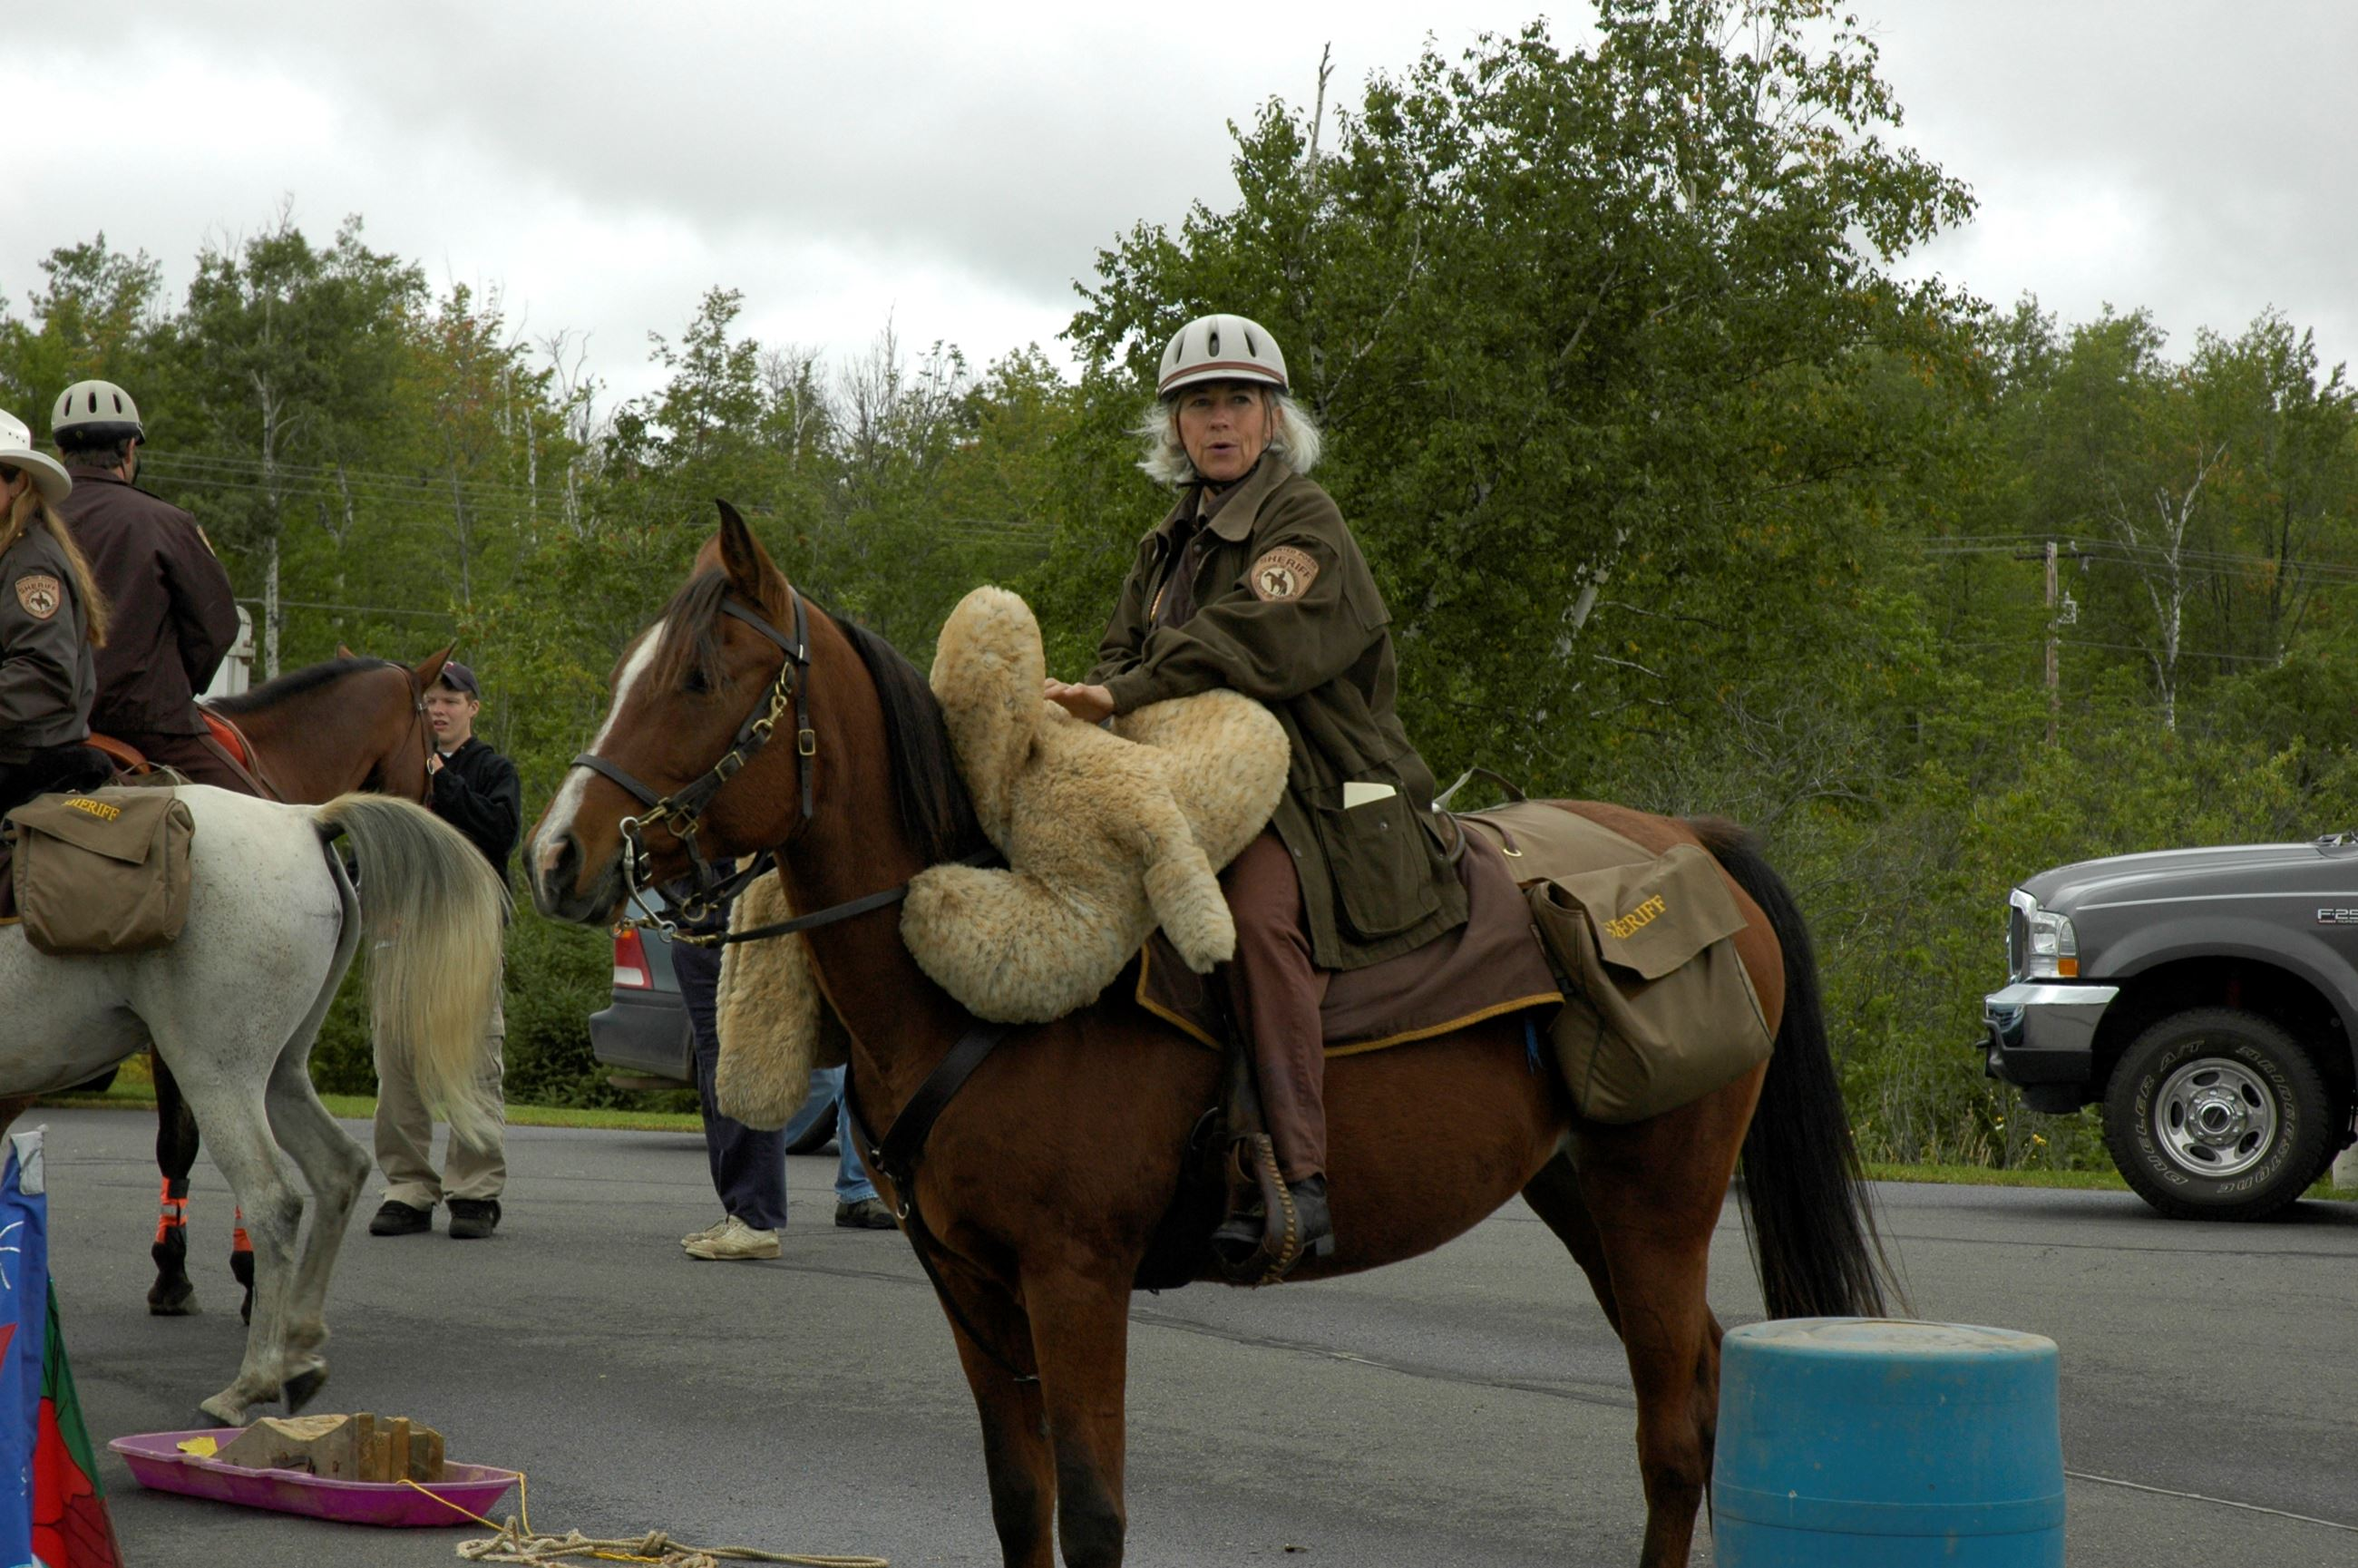 Officer giving horse demonstration